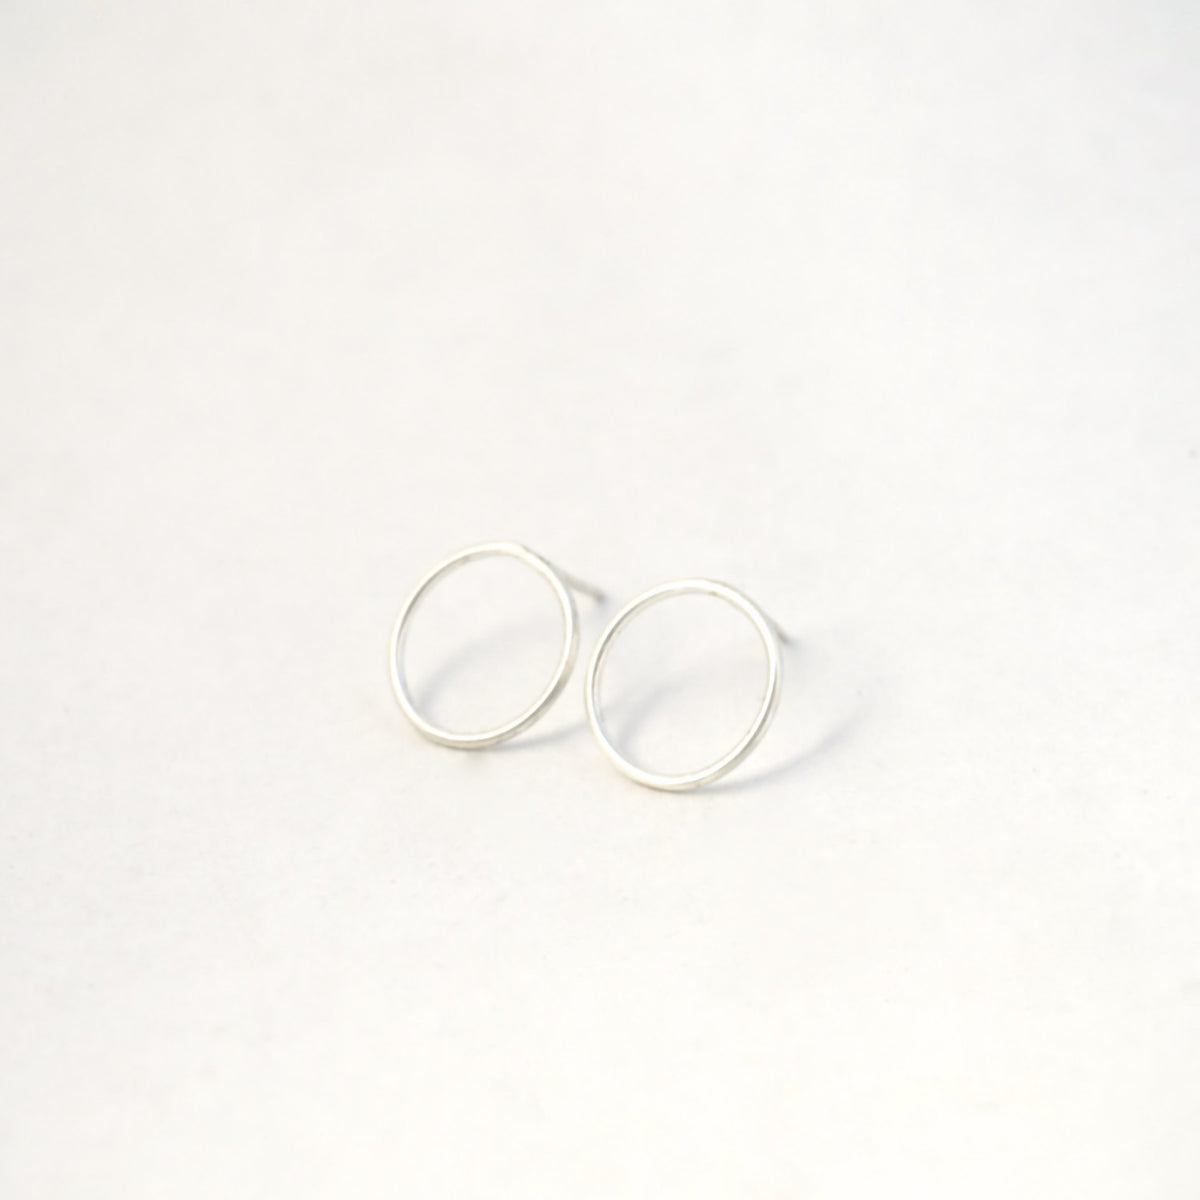 Simple, Elegant and Well Designed Hand-Made Thin Large Circle Studs - 0162 - Virginia Wynne Designs